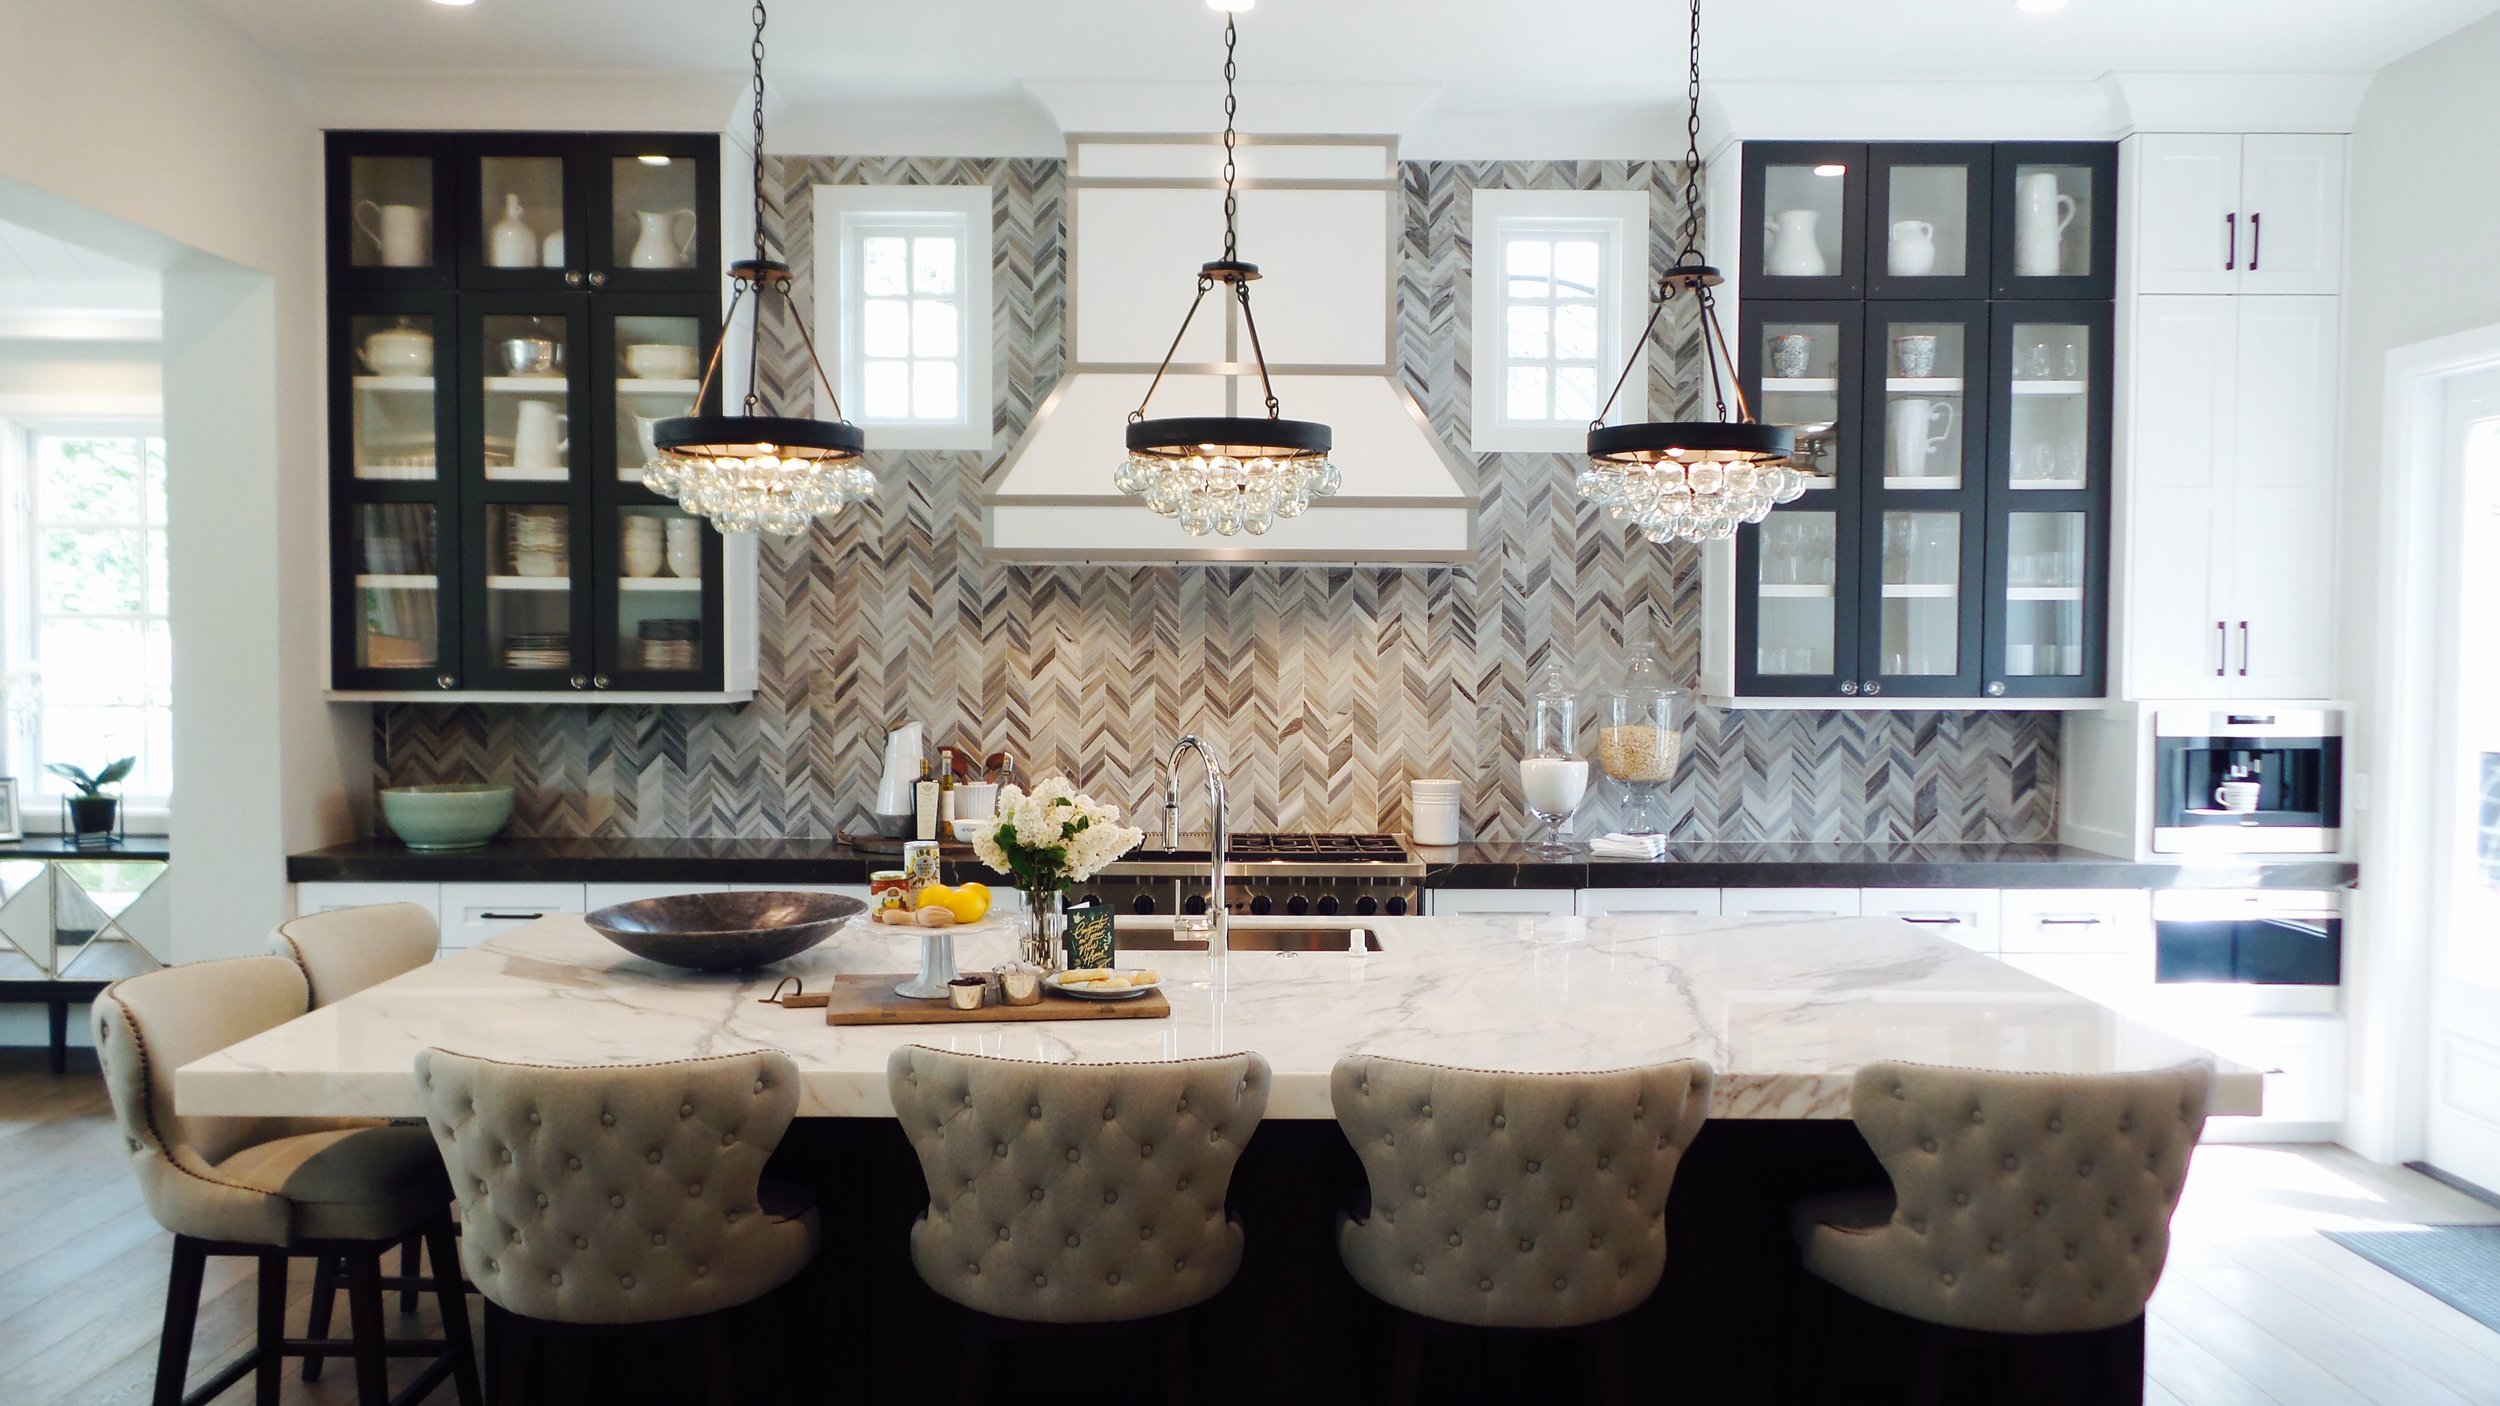 A dream kitchen for both the cook and the people lucky enough to be seated around the island.